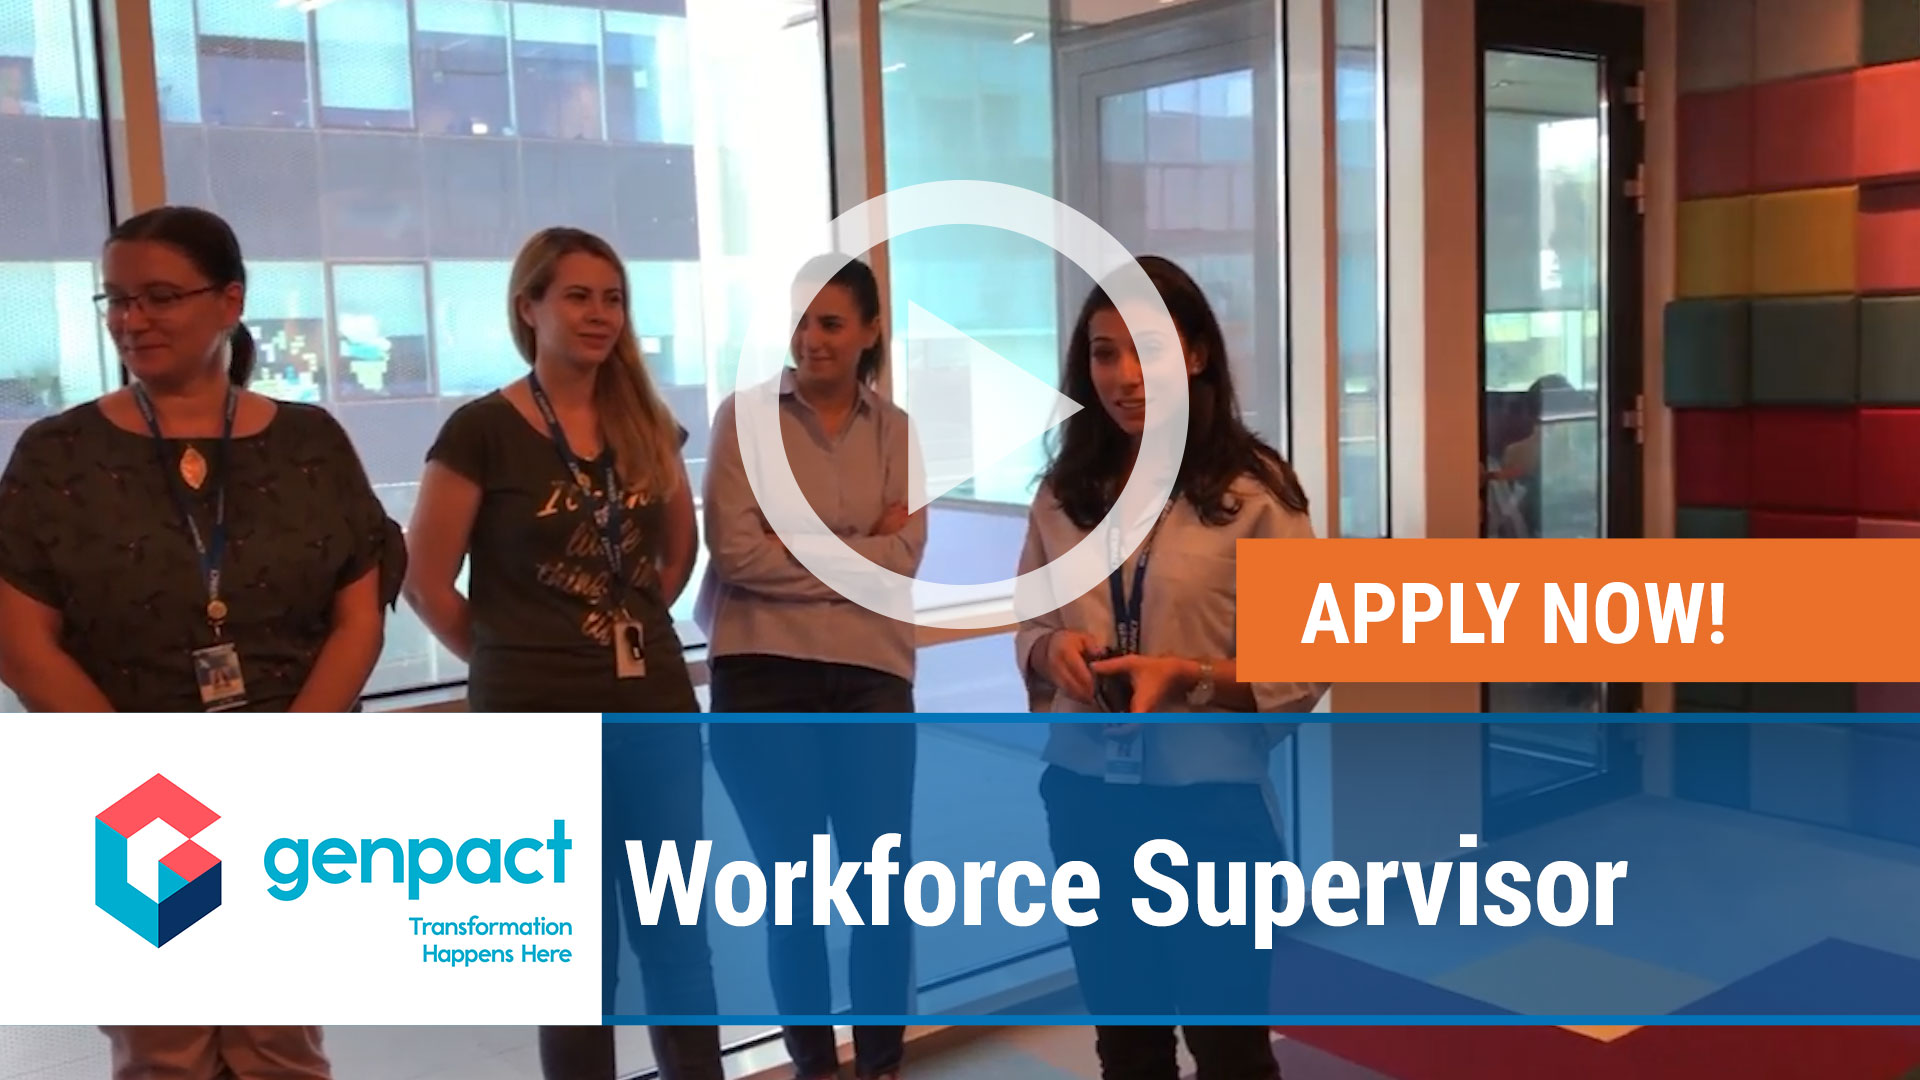 Watch our careers video for available job opening Workforce Supervisor in Richardson, TX, USA